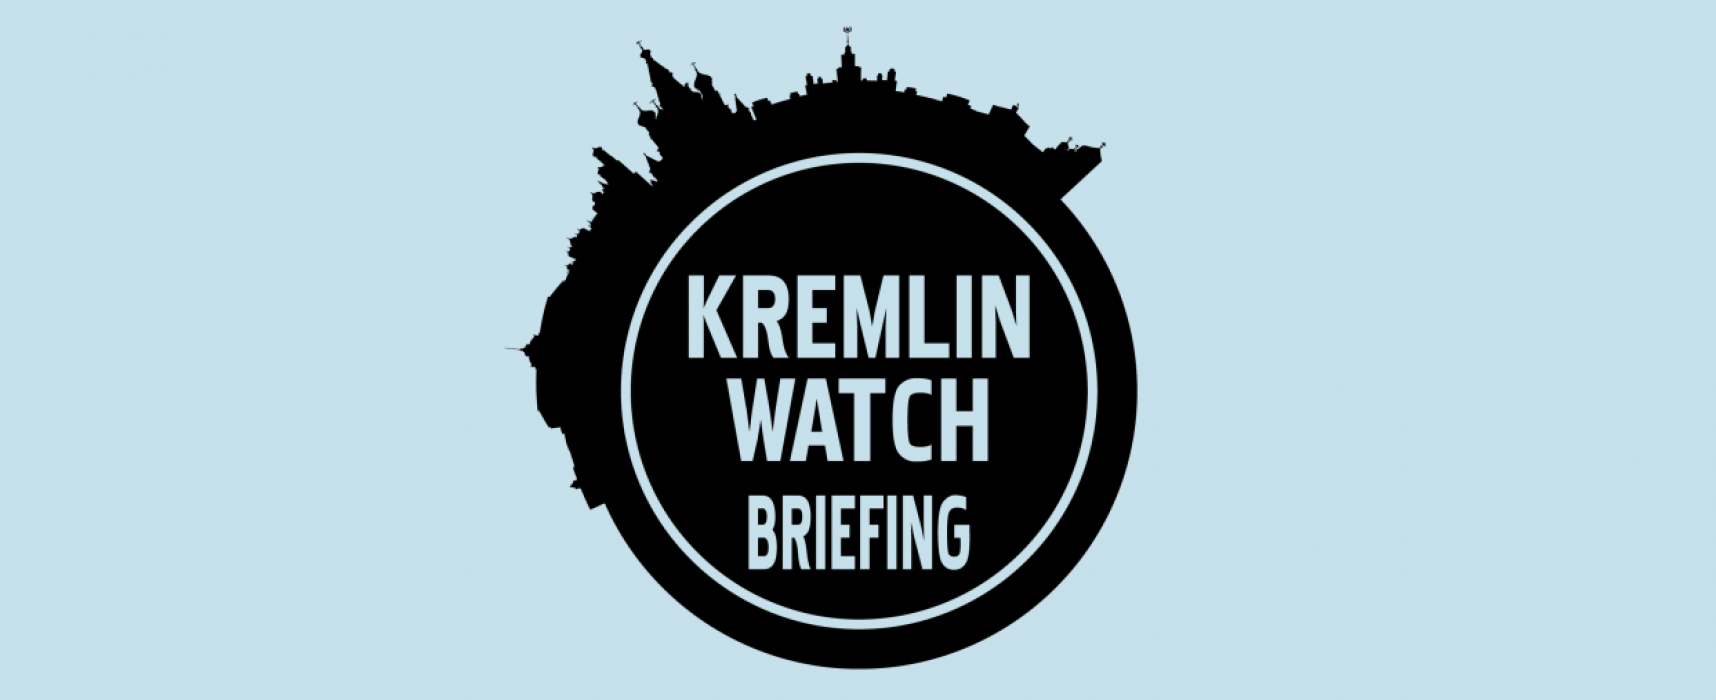 Kremlin Watch Briefing: British Parliament moves toward a more coordinated investigation